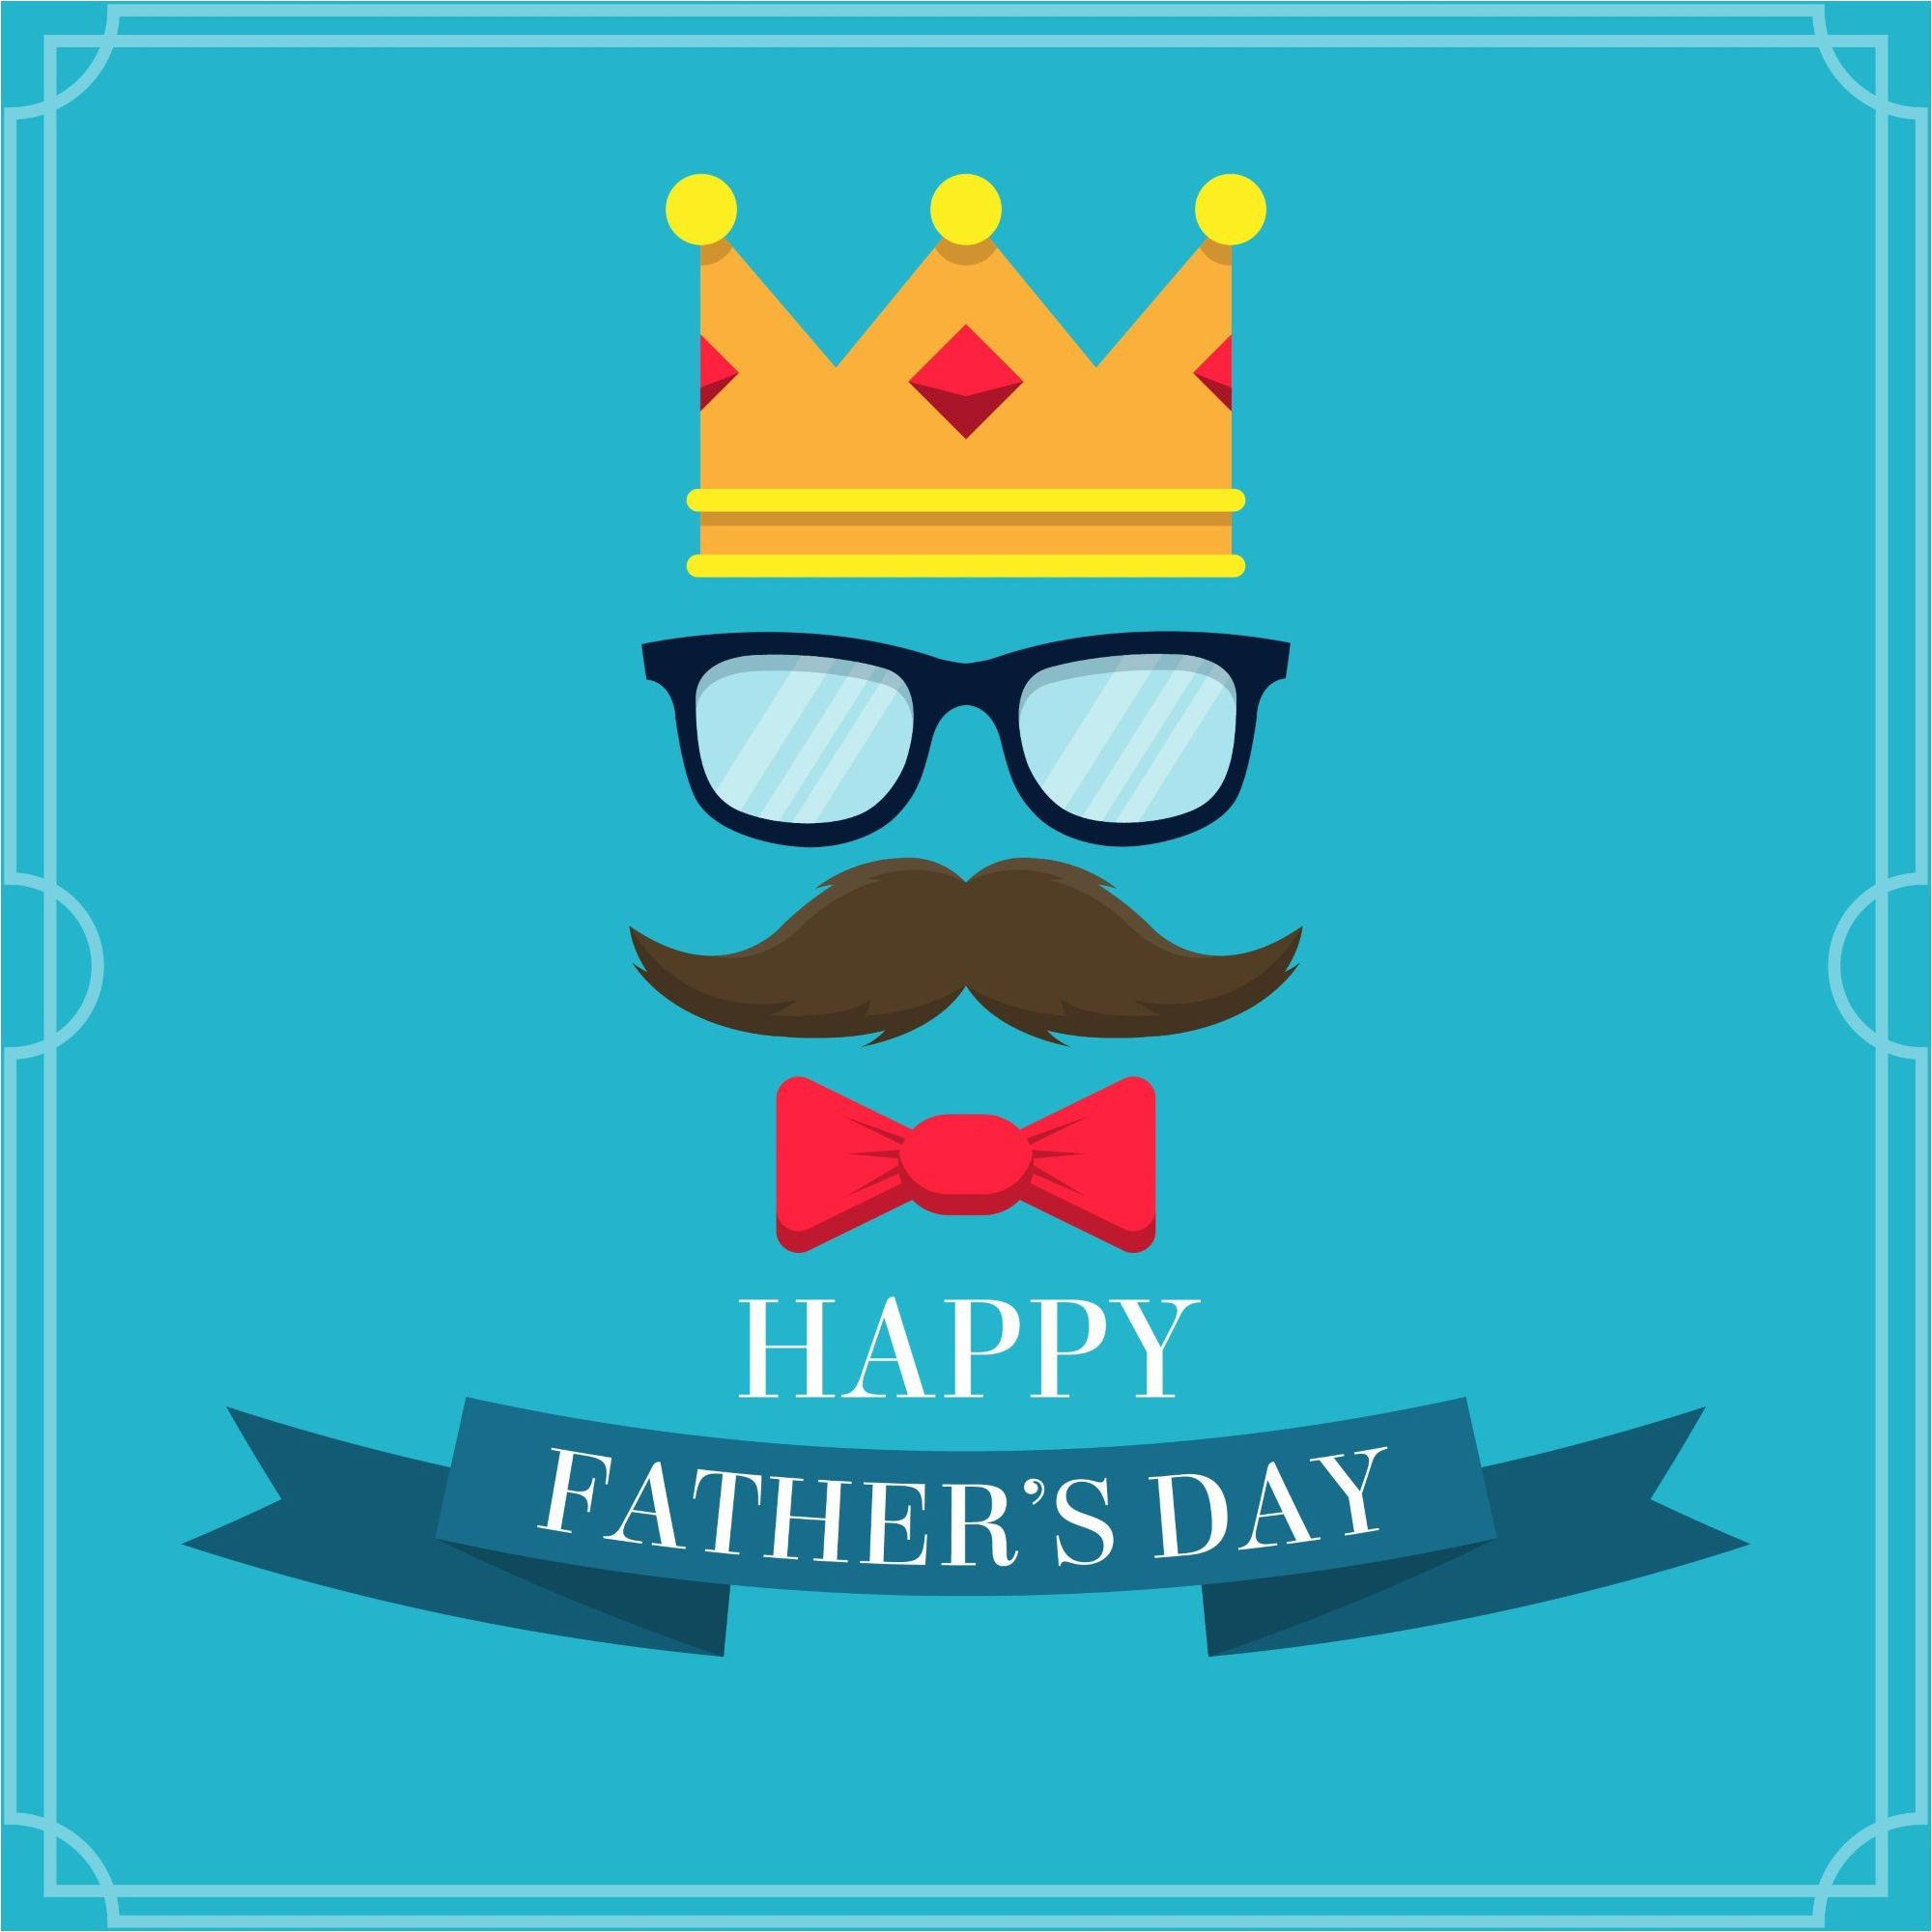 Happy Fathers Day Background With Gold Crown Glasses